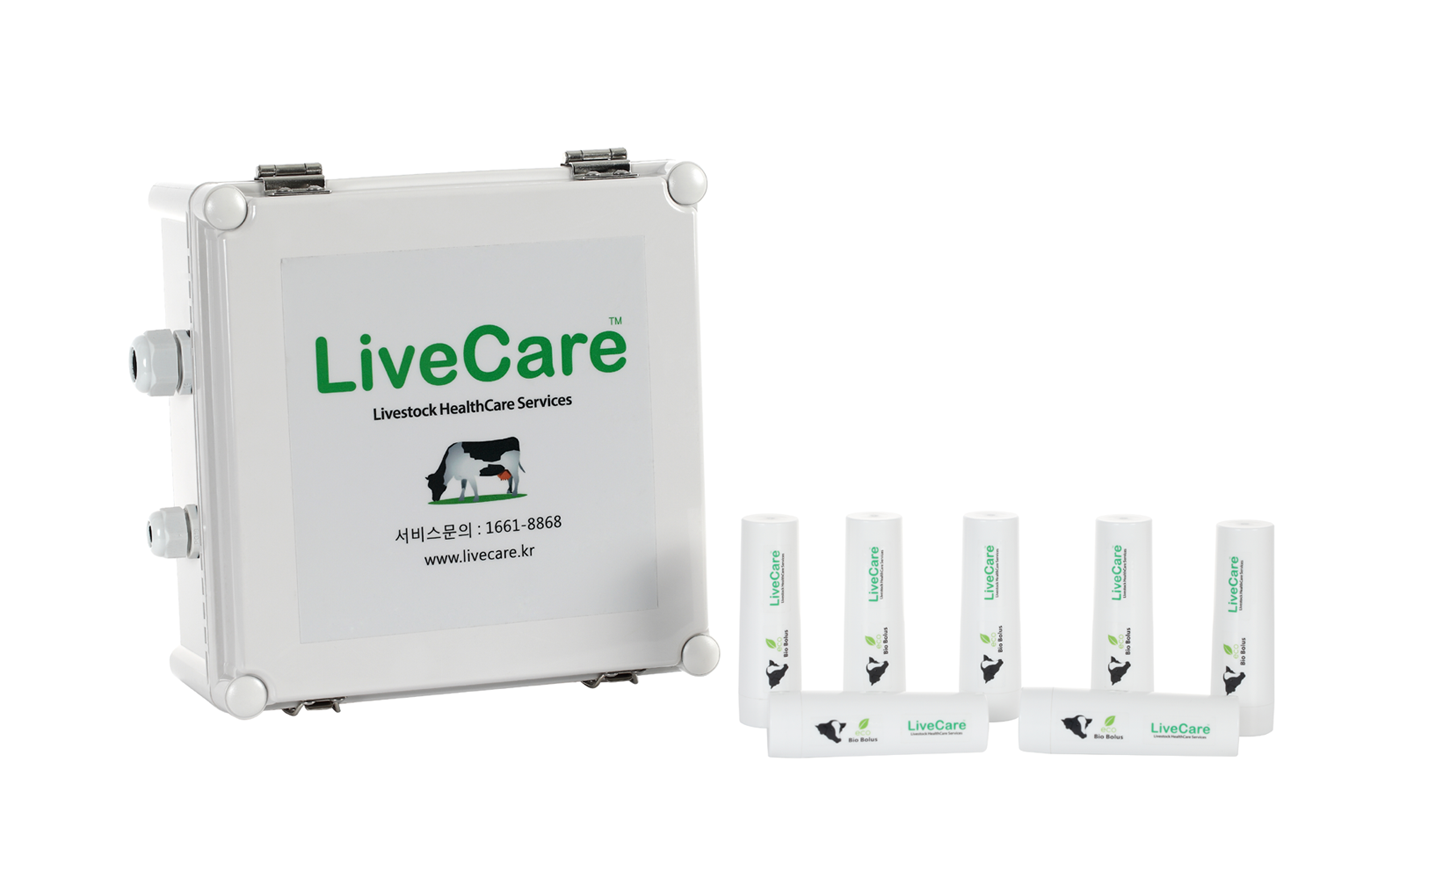 The LiveCare data gathering device and capsules